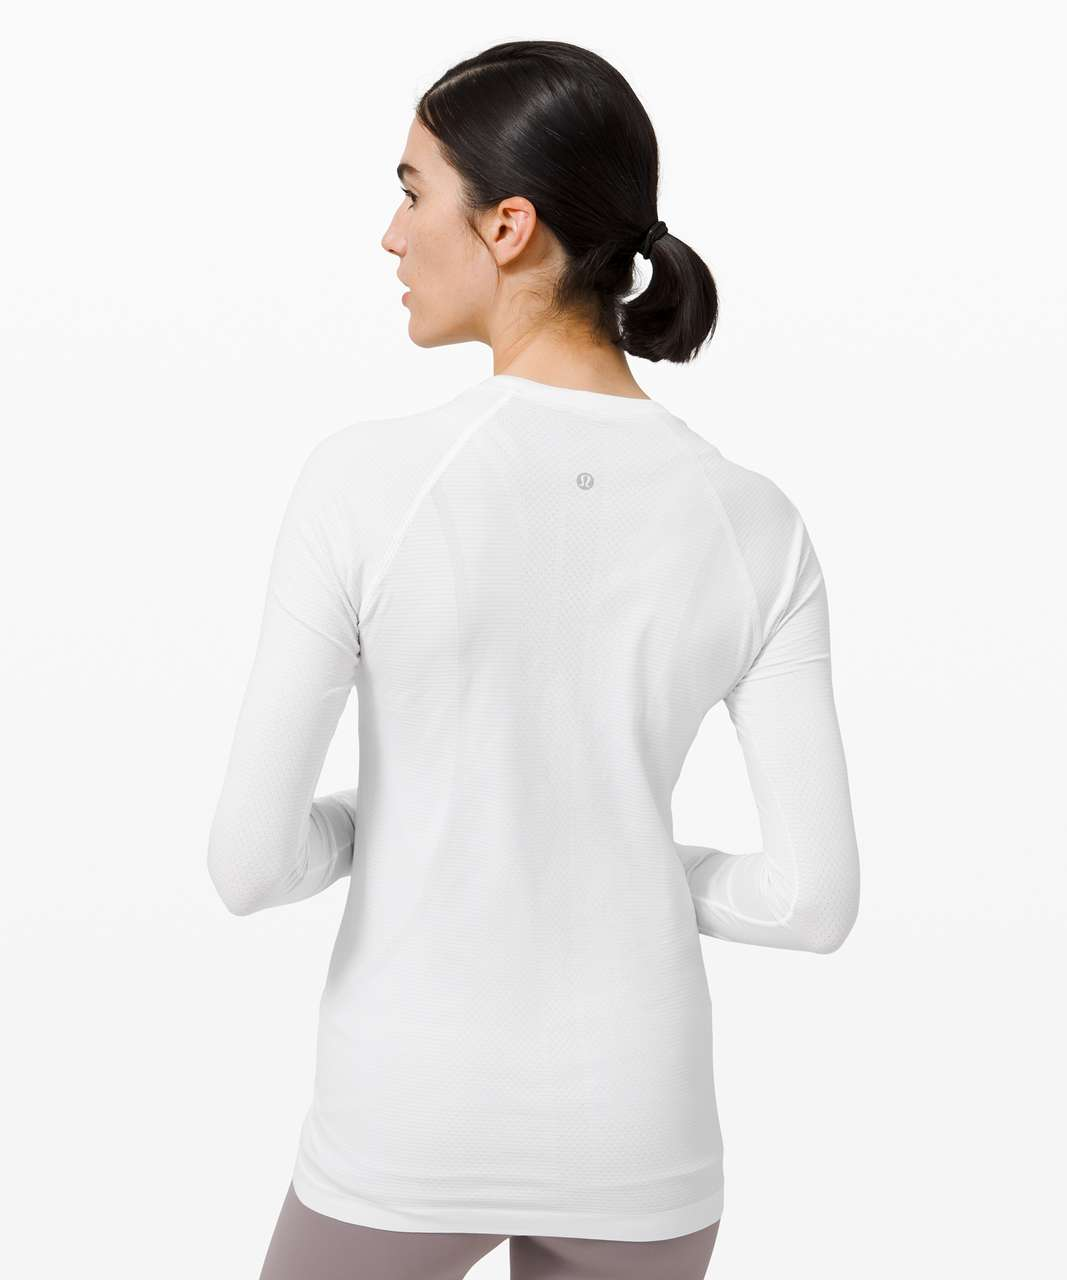 Lululemon Swiftly Tech Long Sleeve 2.0 - White / White (First Release)